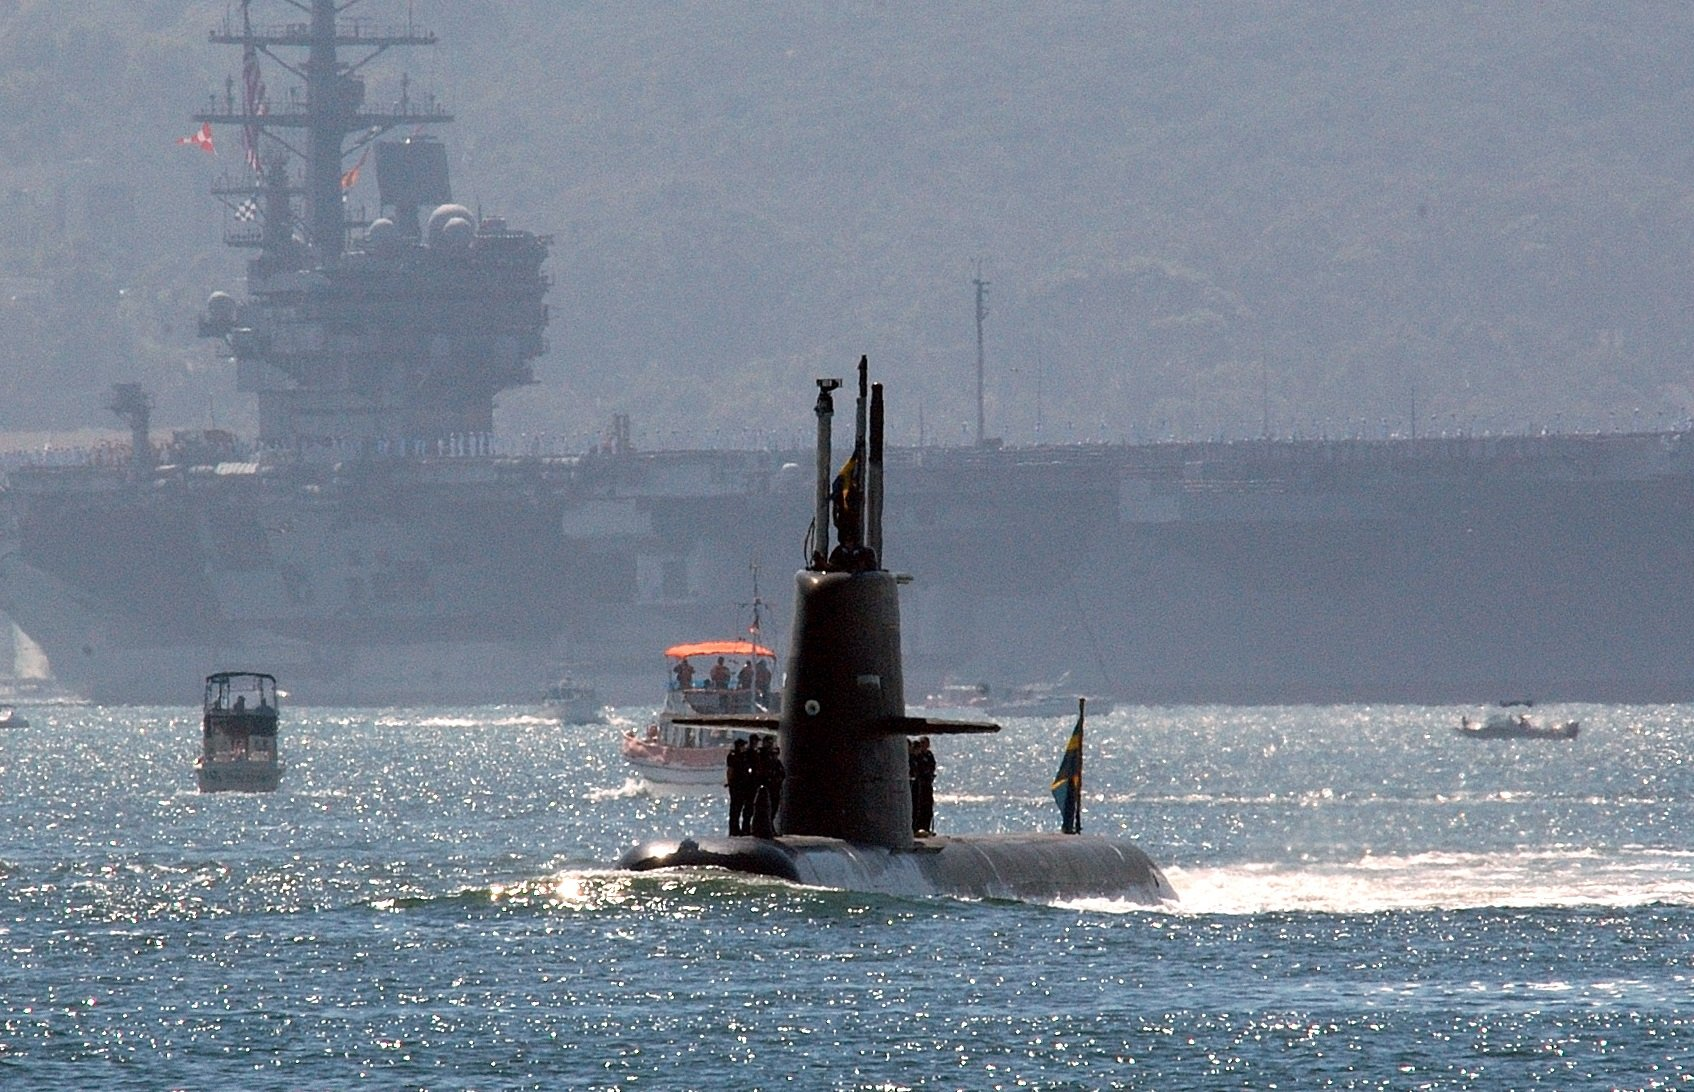 How This Small (But Stealth) Submarine from Sweden Sunk a Navy